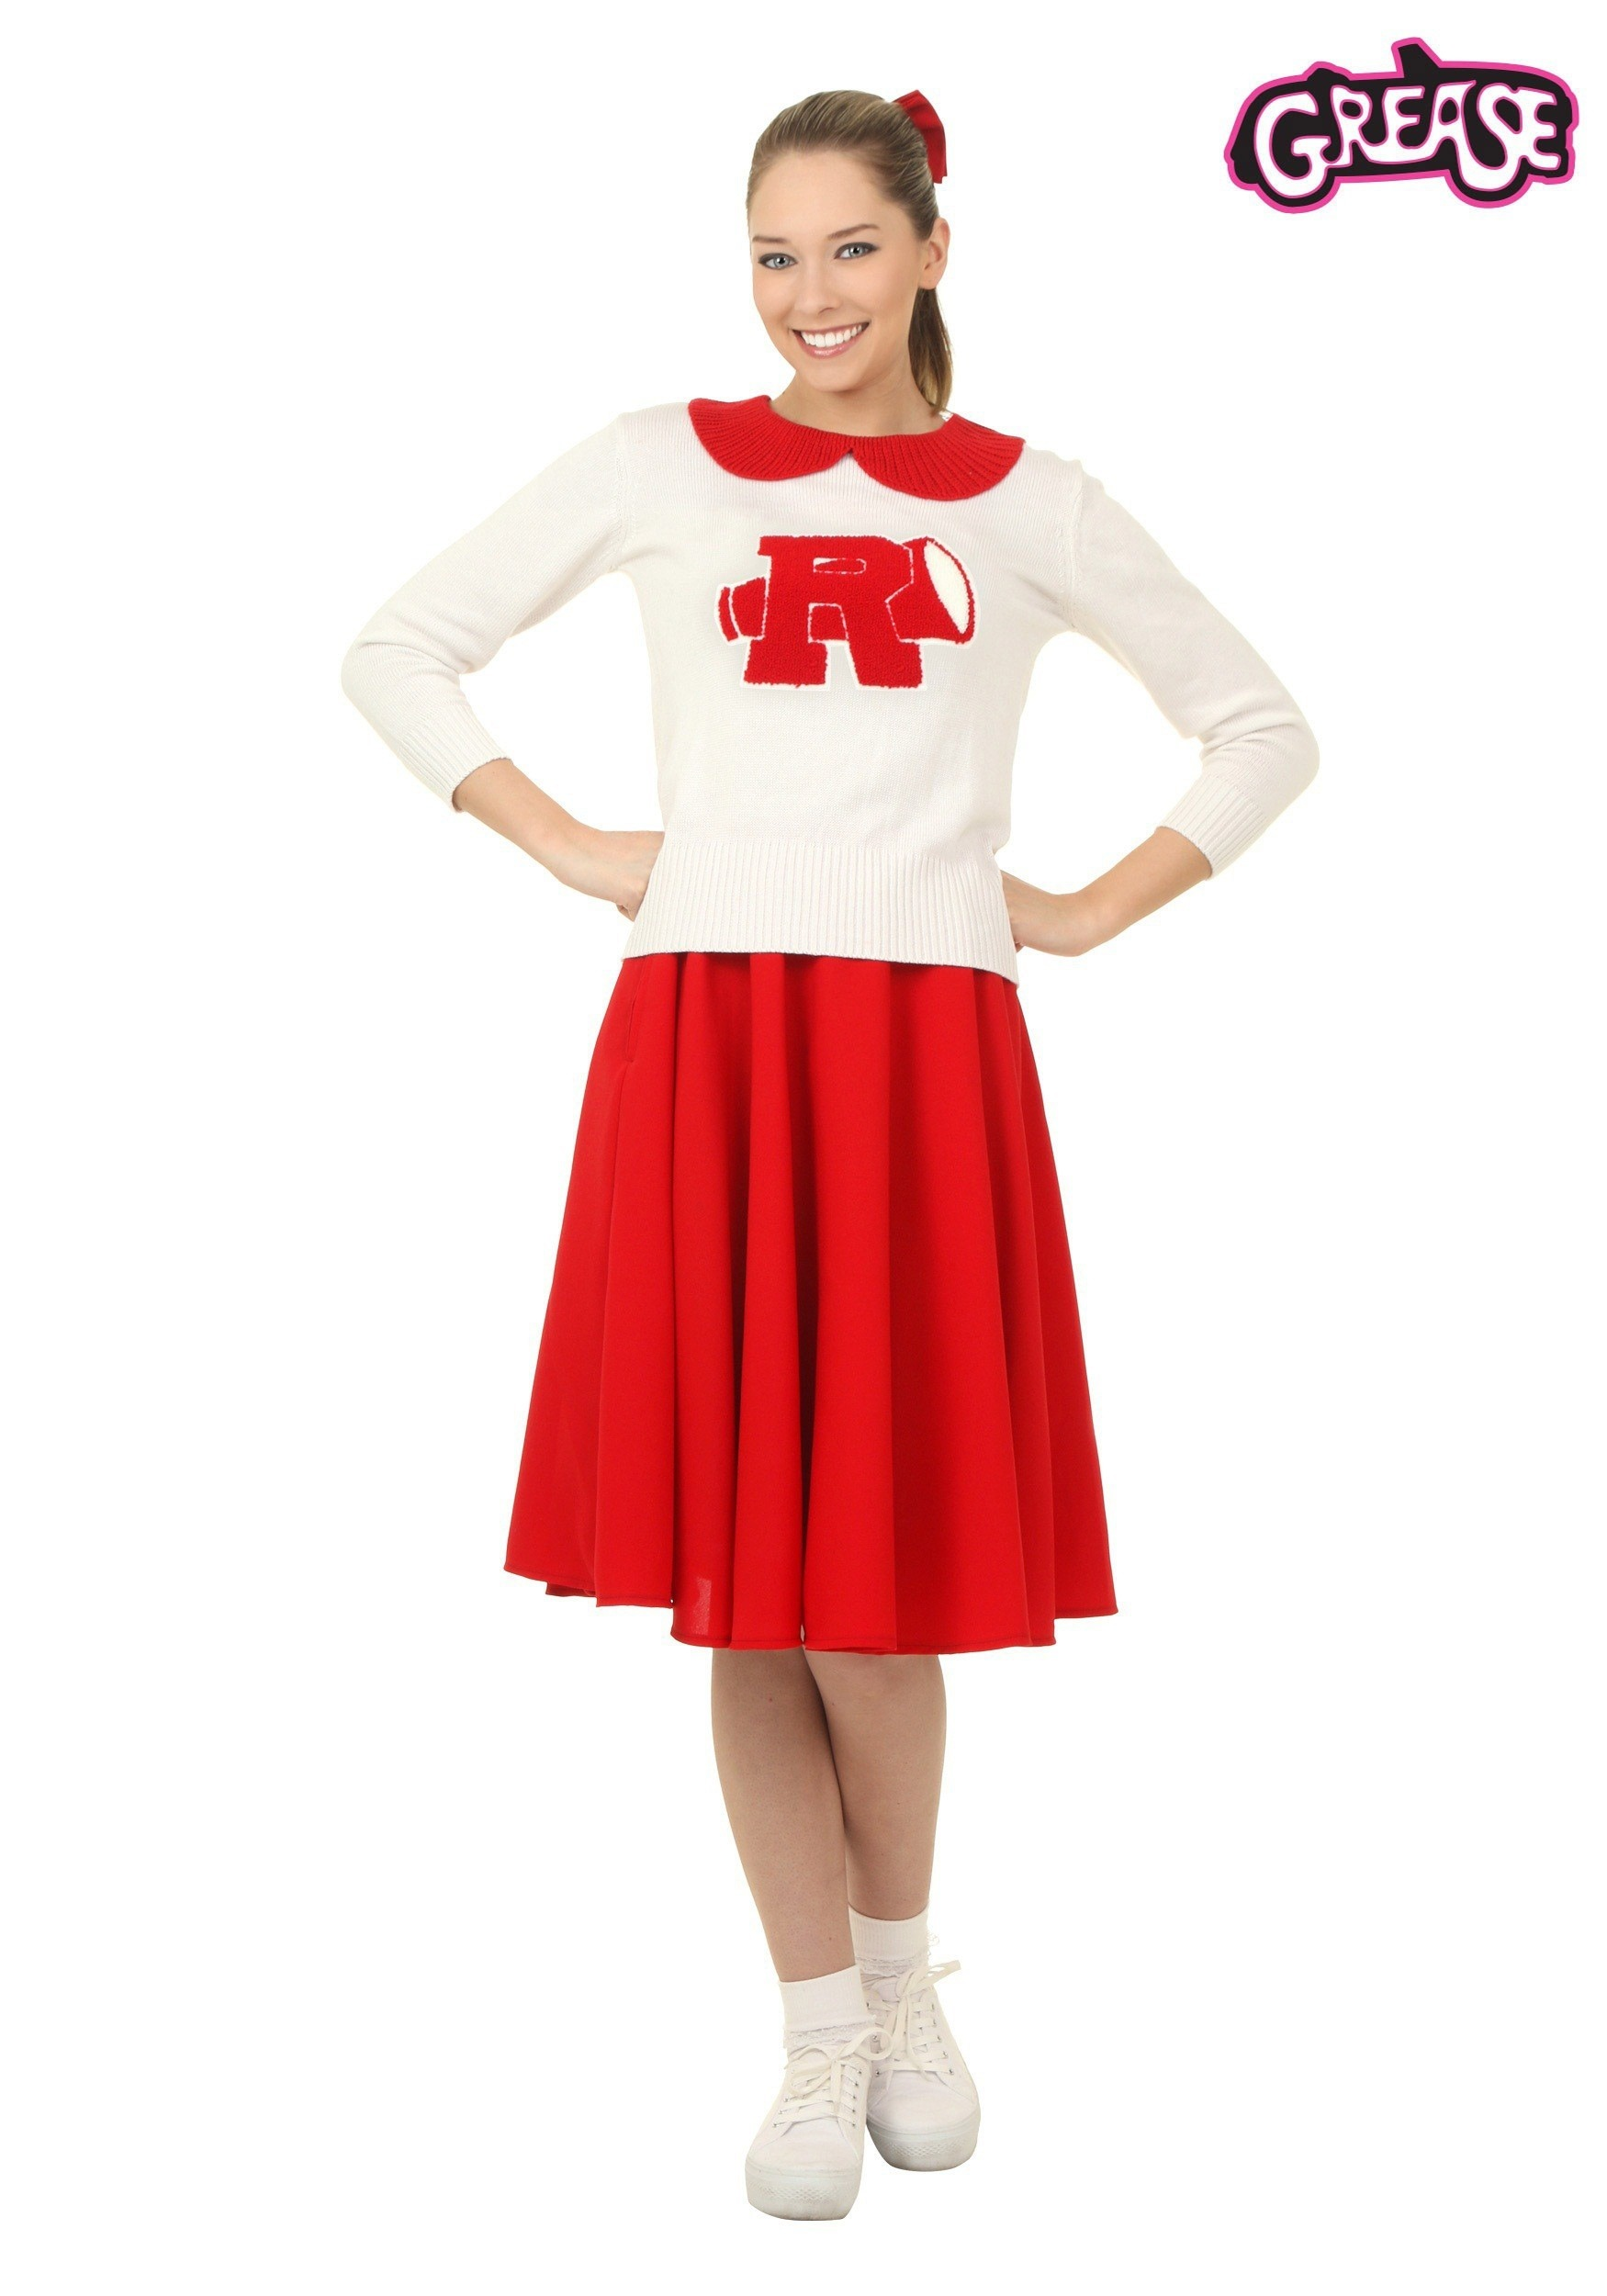 fd1d1ba0a9 Grease Rydell High Cheerleader Plus Size Costume for Women